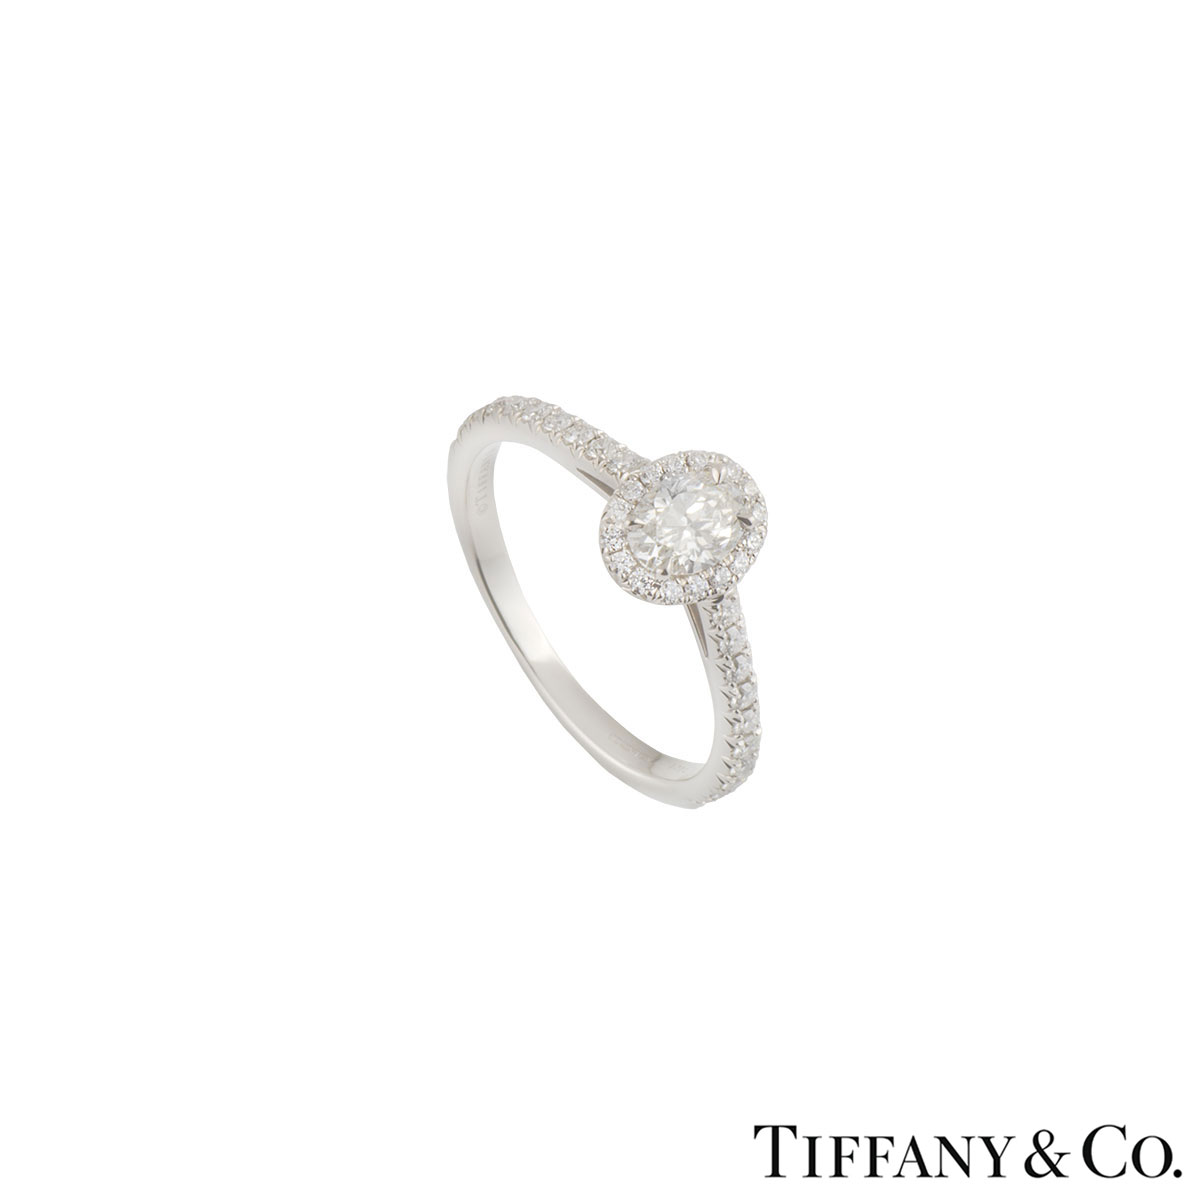 Tiffany & Co. Platinum Diamond Soleste Oval Ring